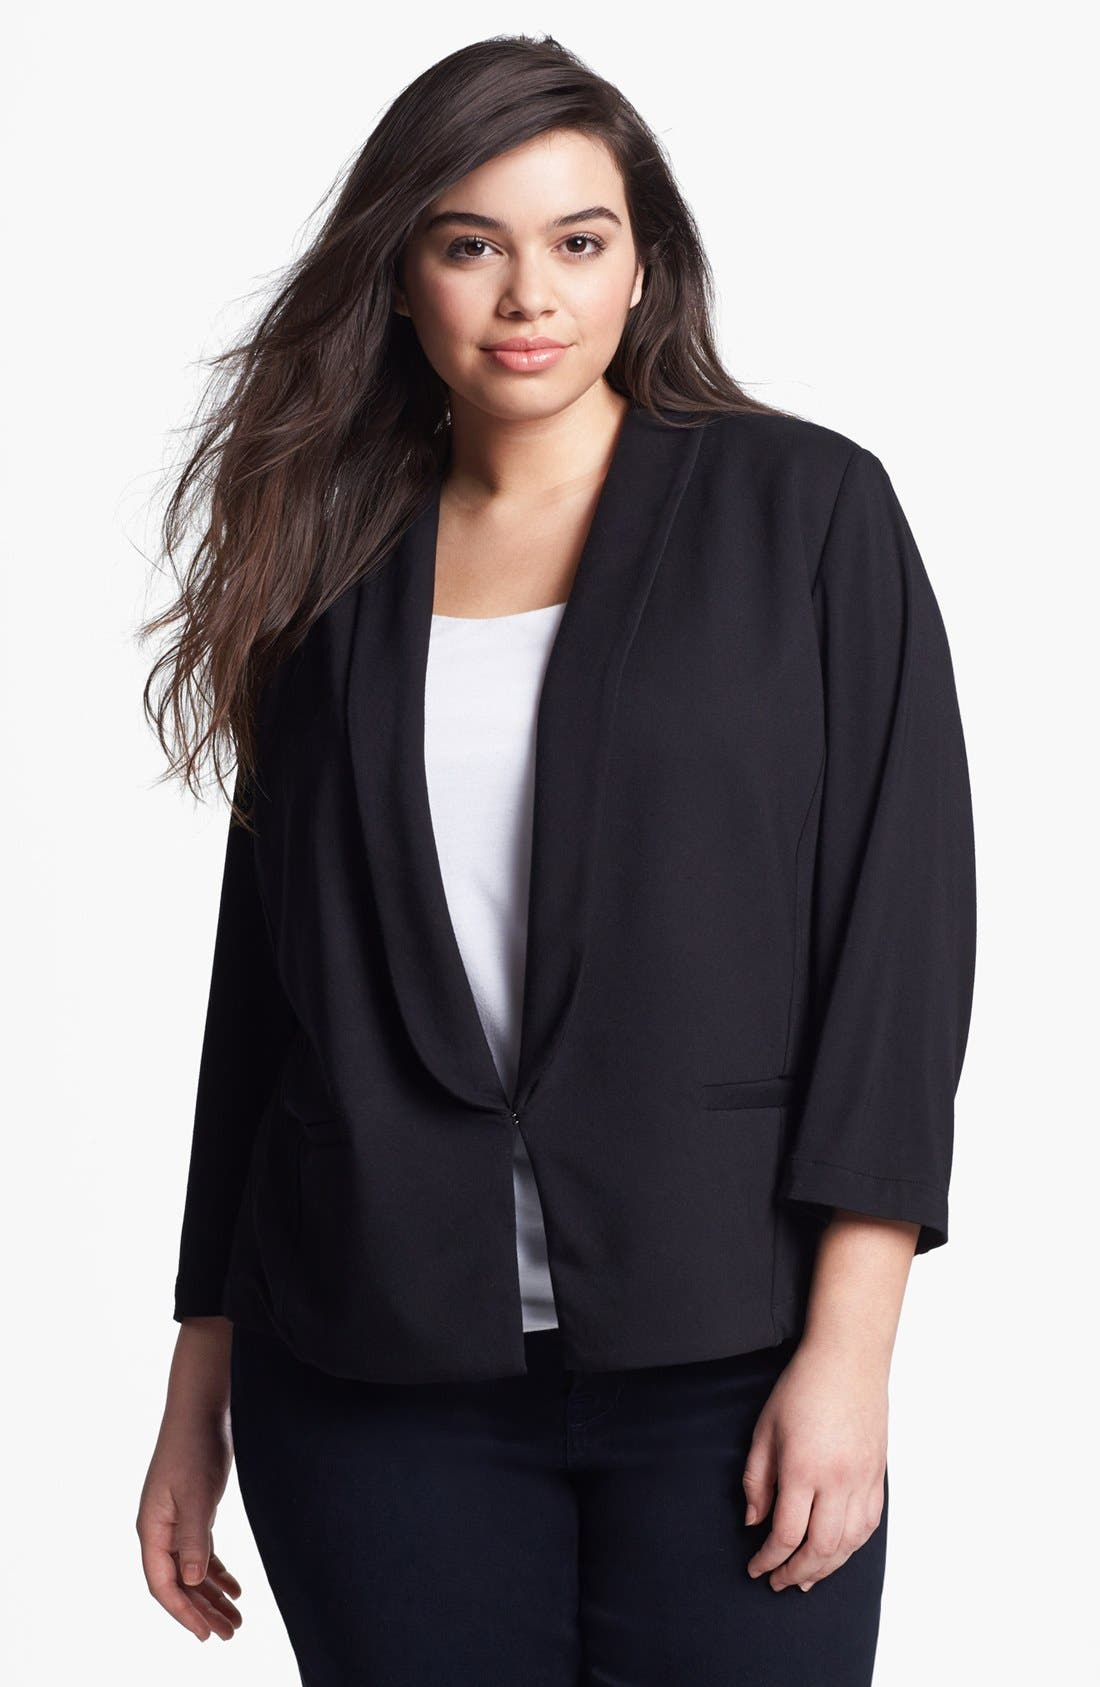 Alternate Image 1 Selected - Sejour 'Siro' Print Shawl Collar Jacket (Plus Size)